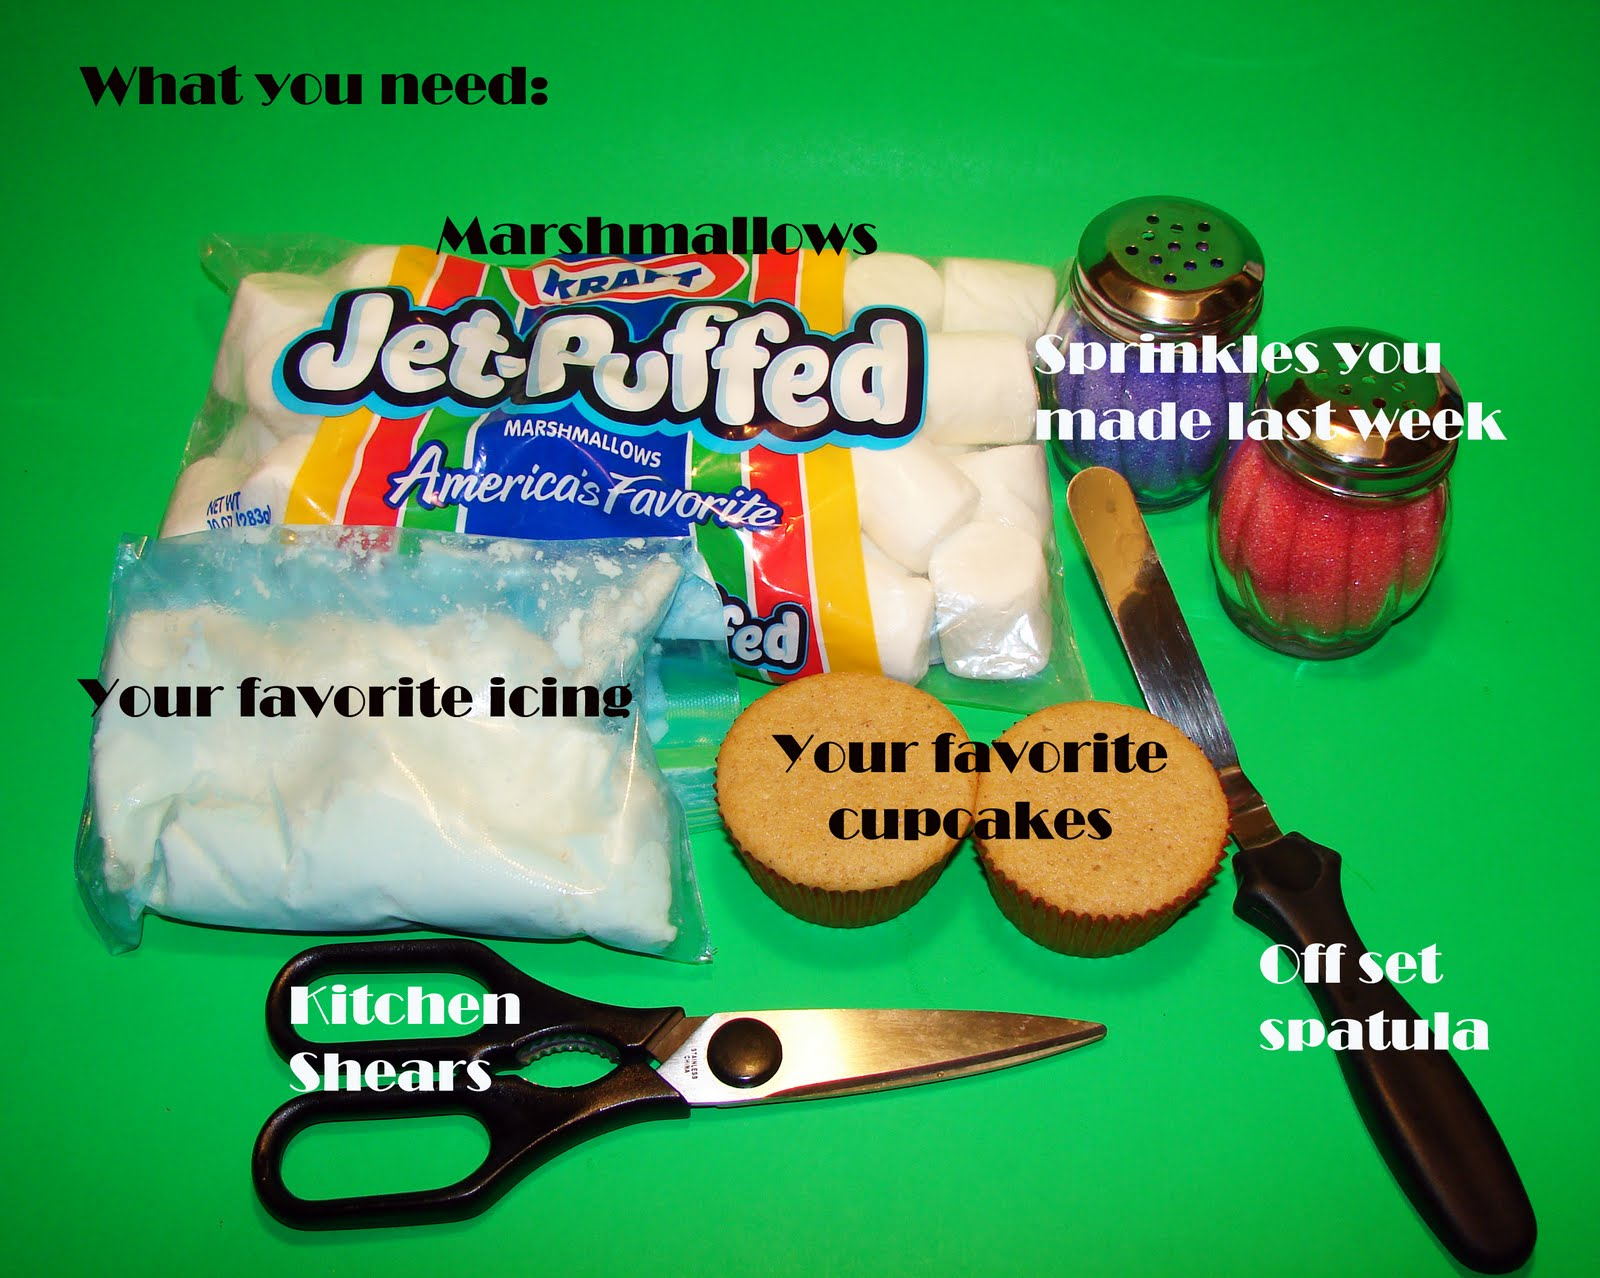 how to cut marshmallow flowers